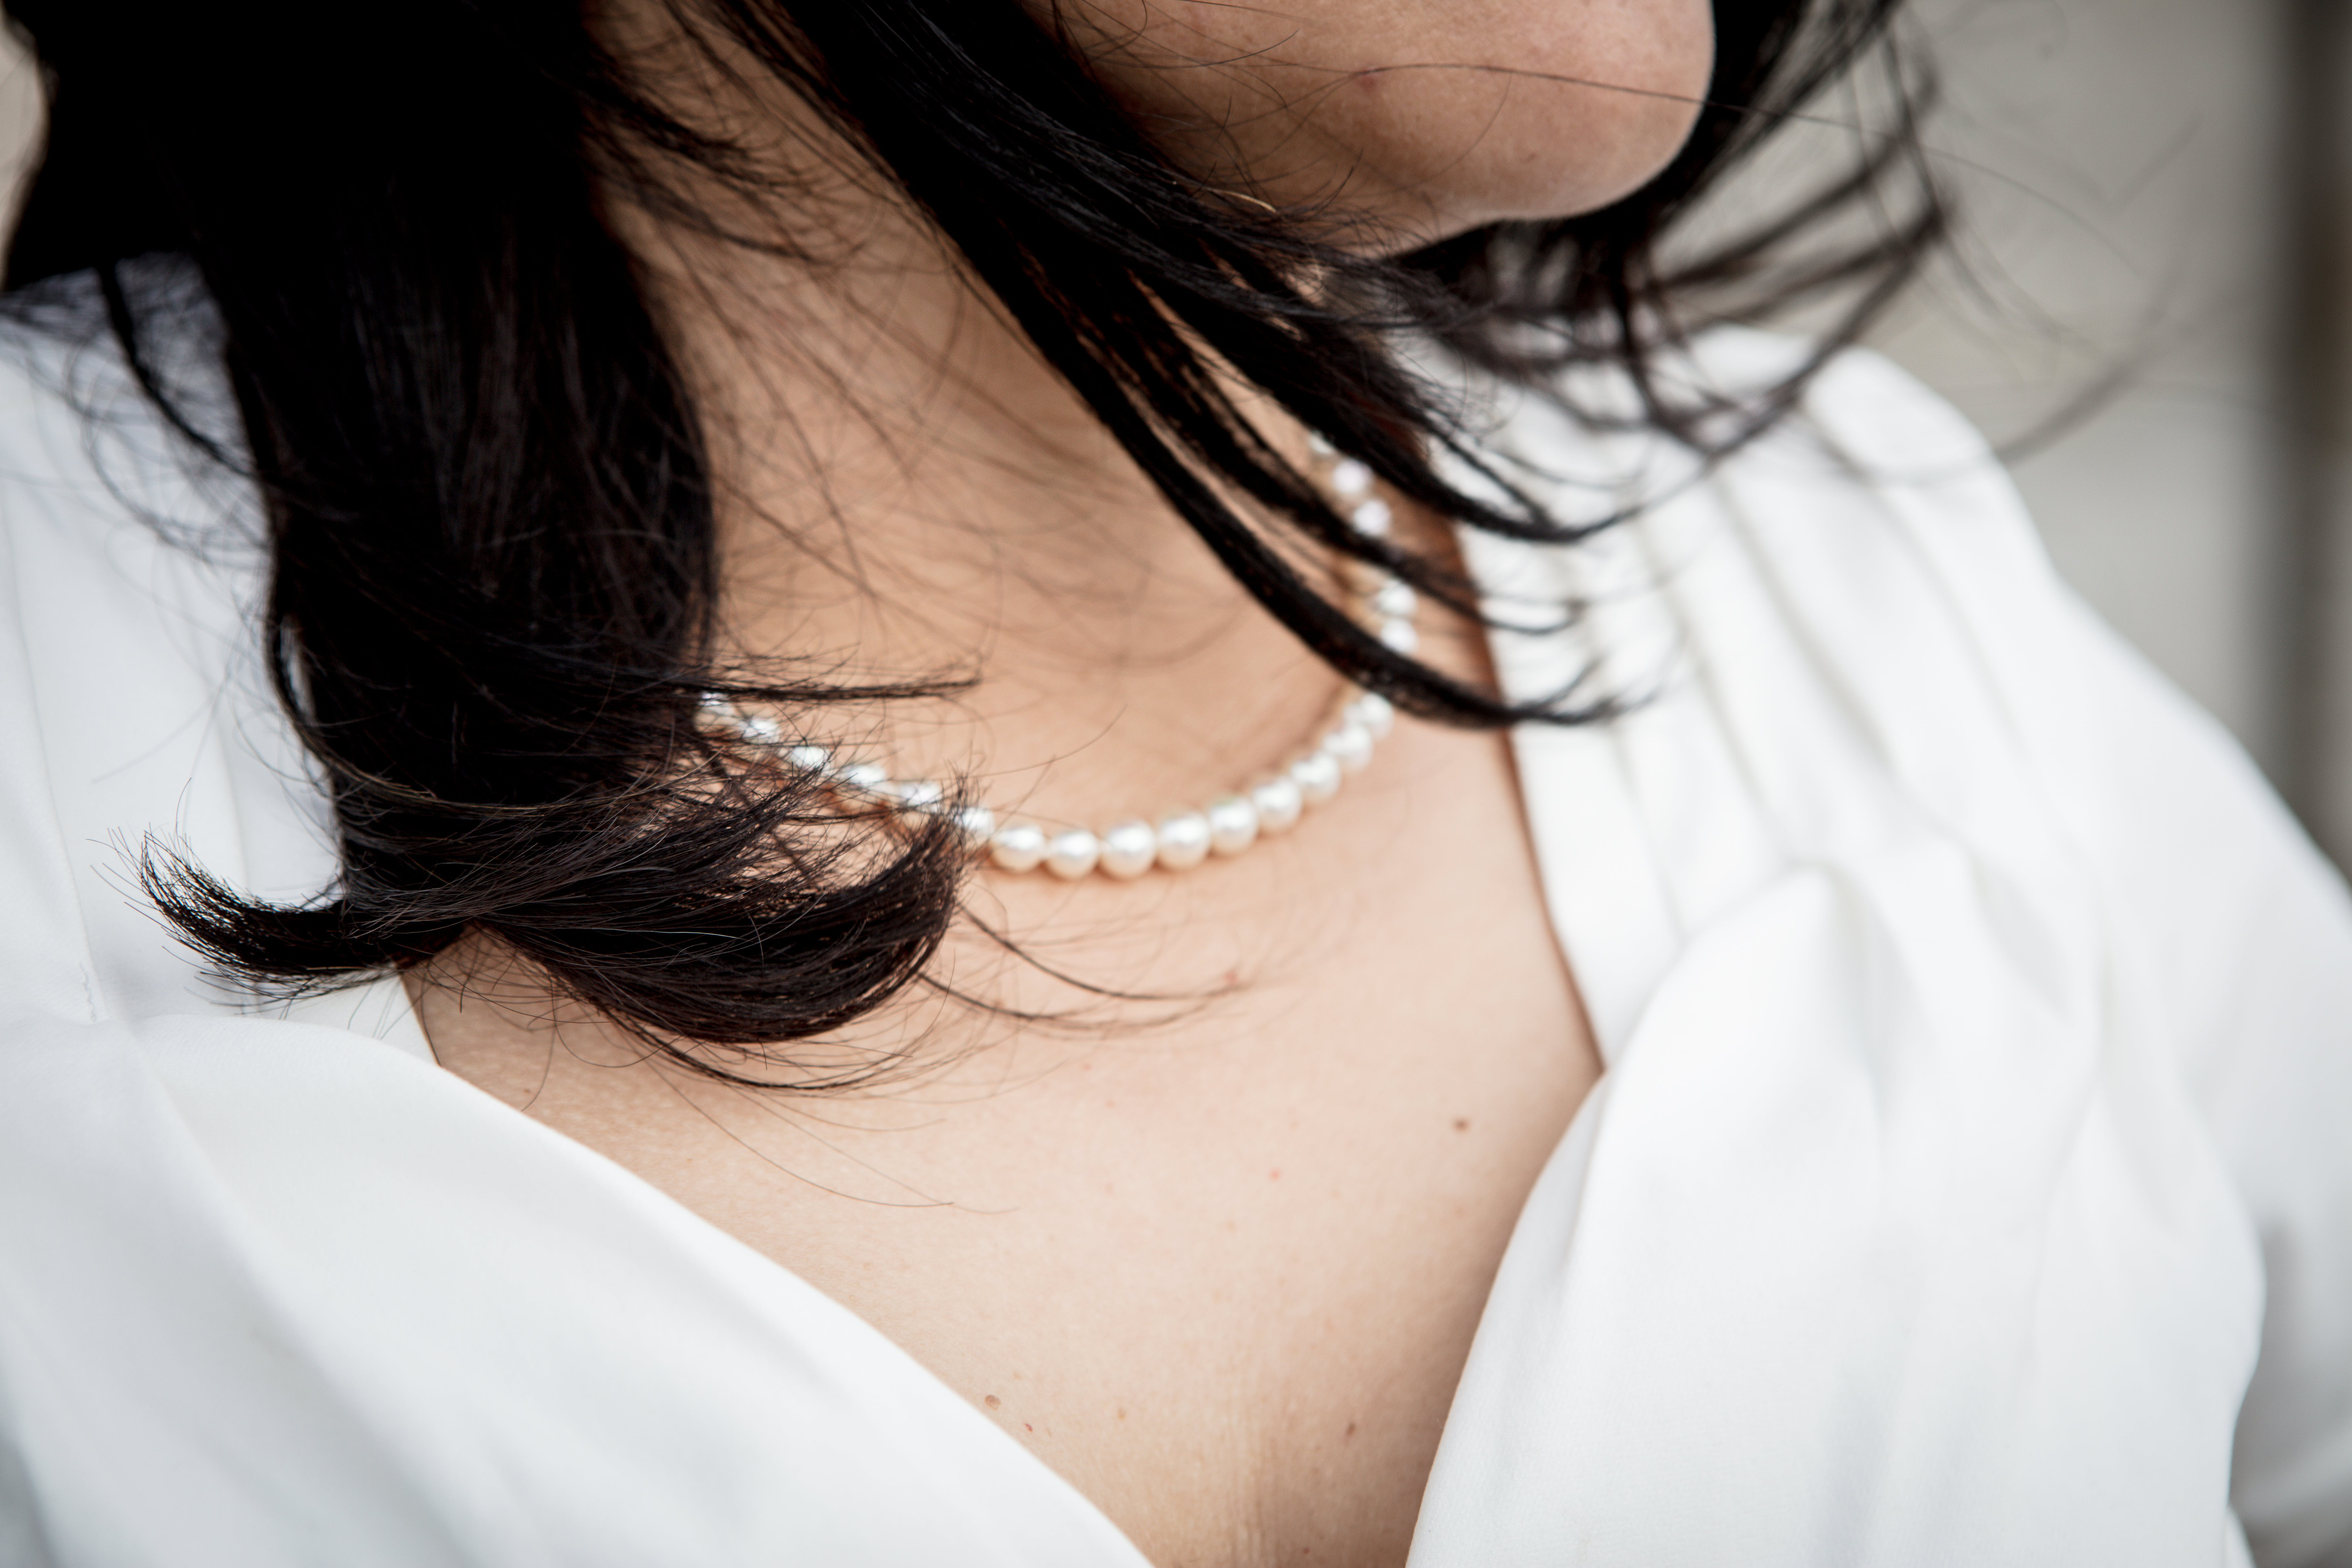 Close-up Photo Of Woman Wearing Beaded White Pearl Necklace